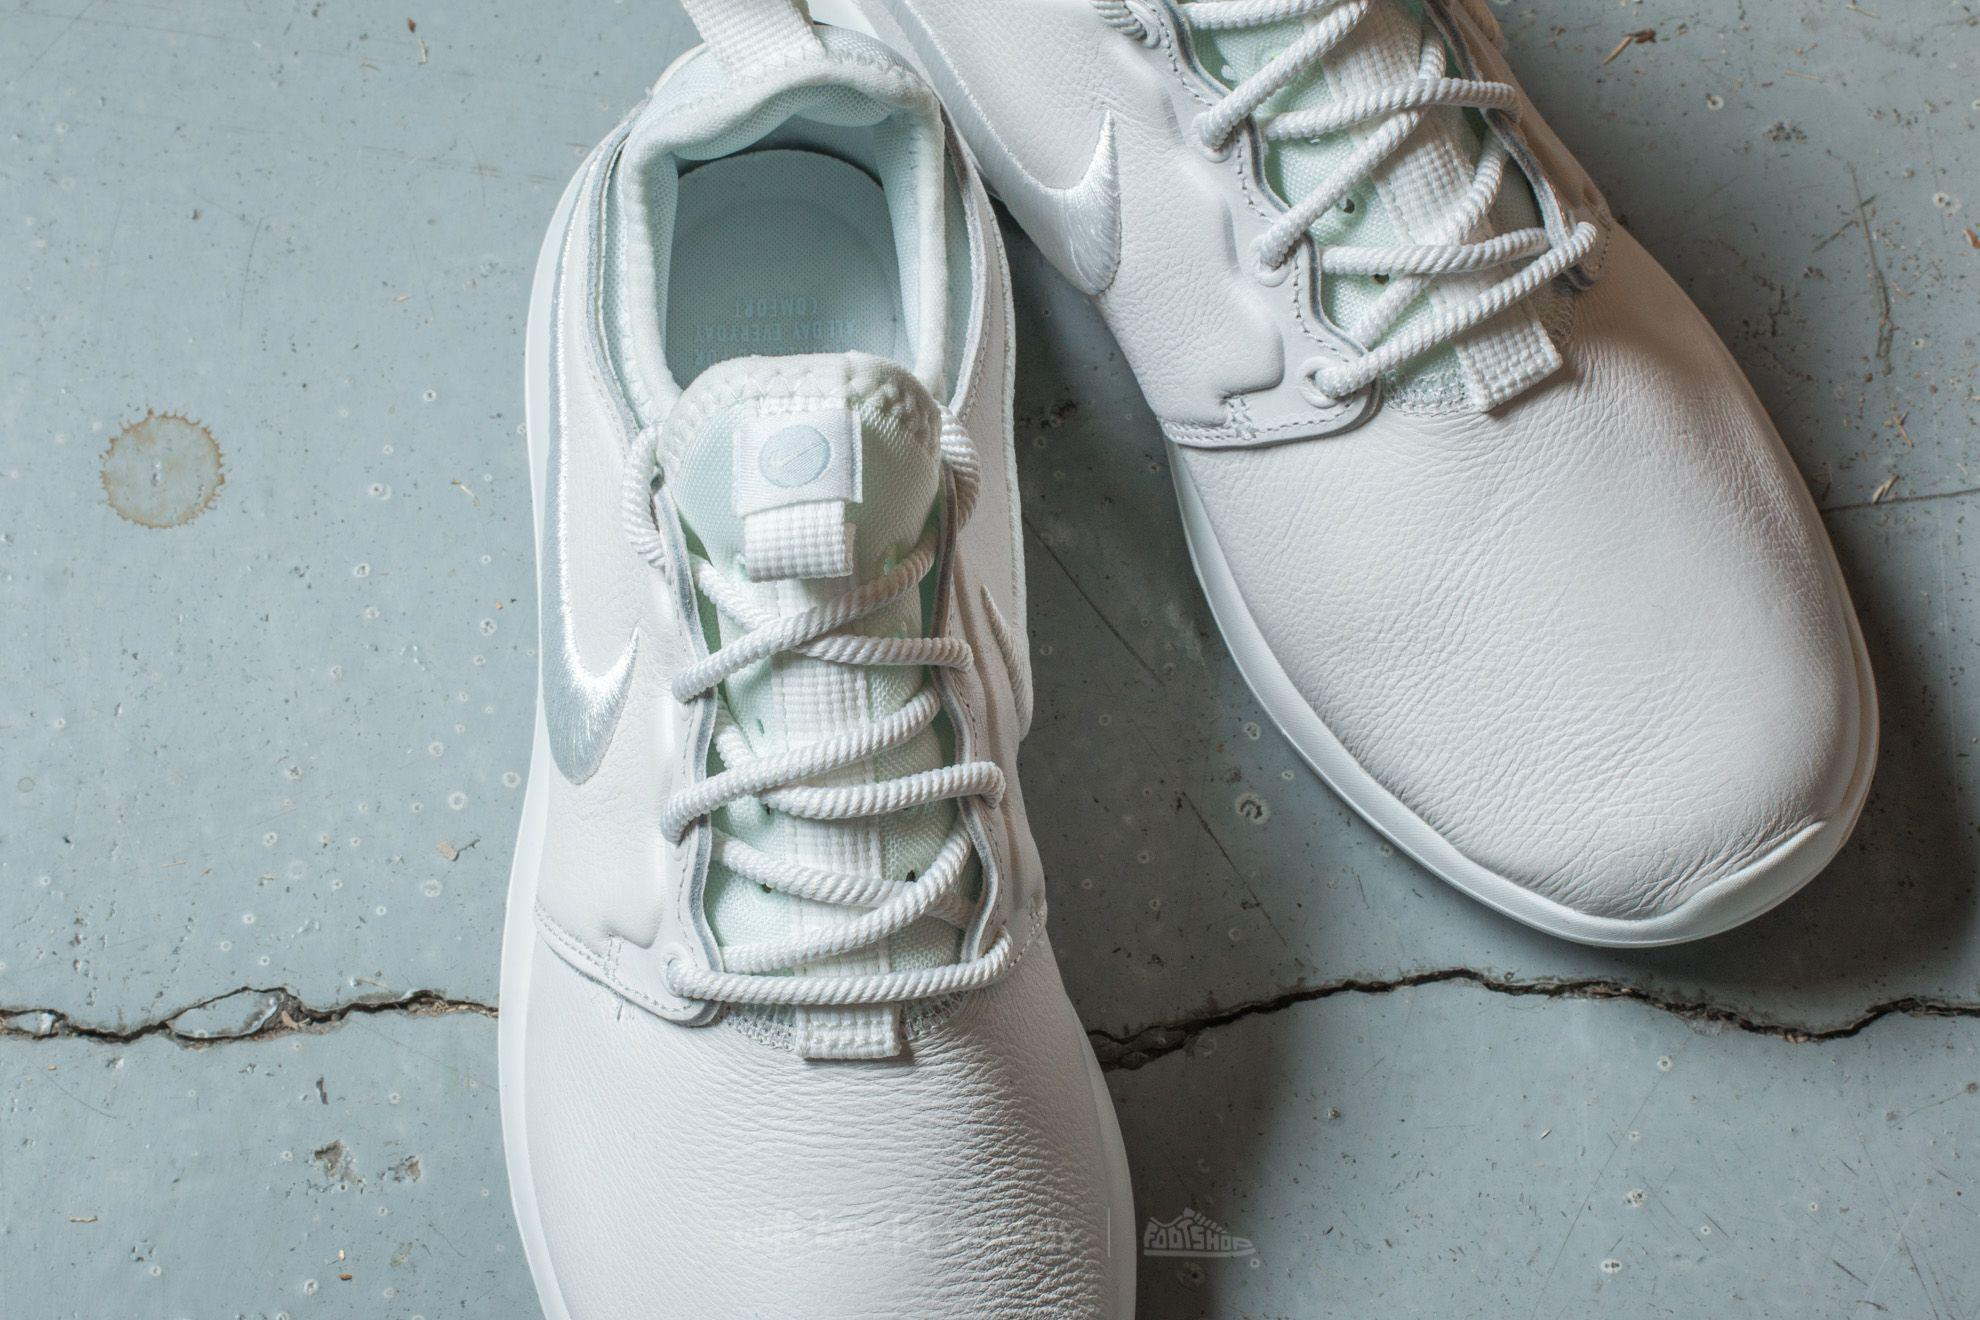 509ac43f9ea27 Lyst - Nike W Roshe Two Si Summit White  Summit White in White